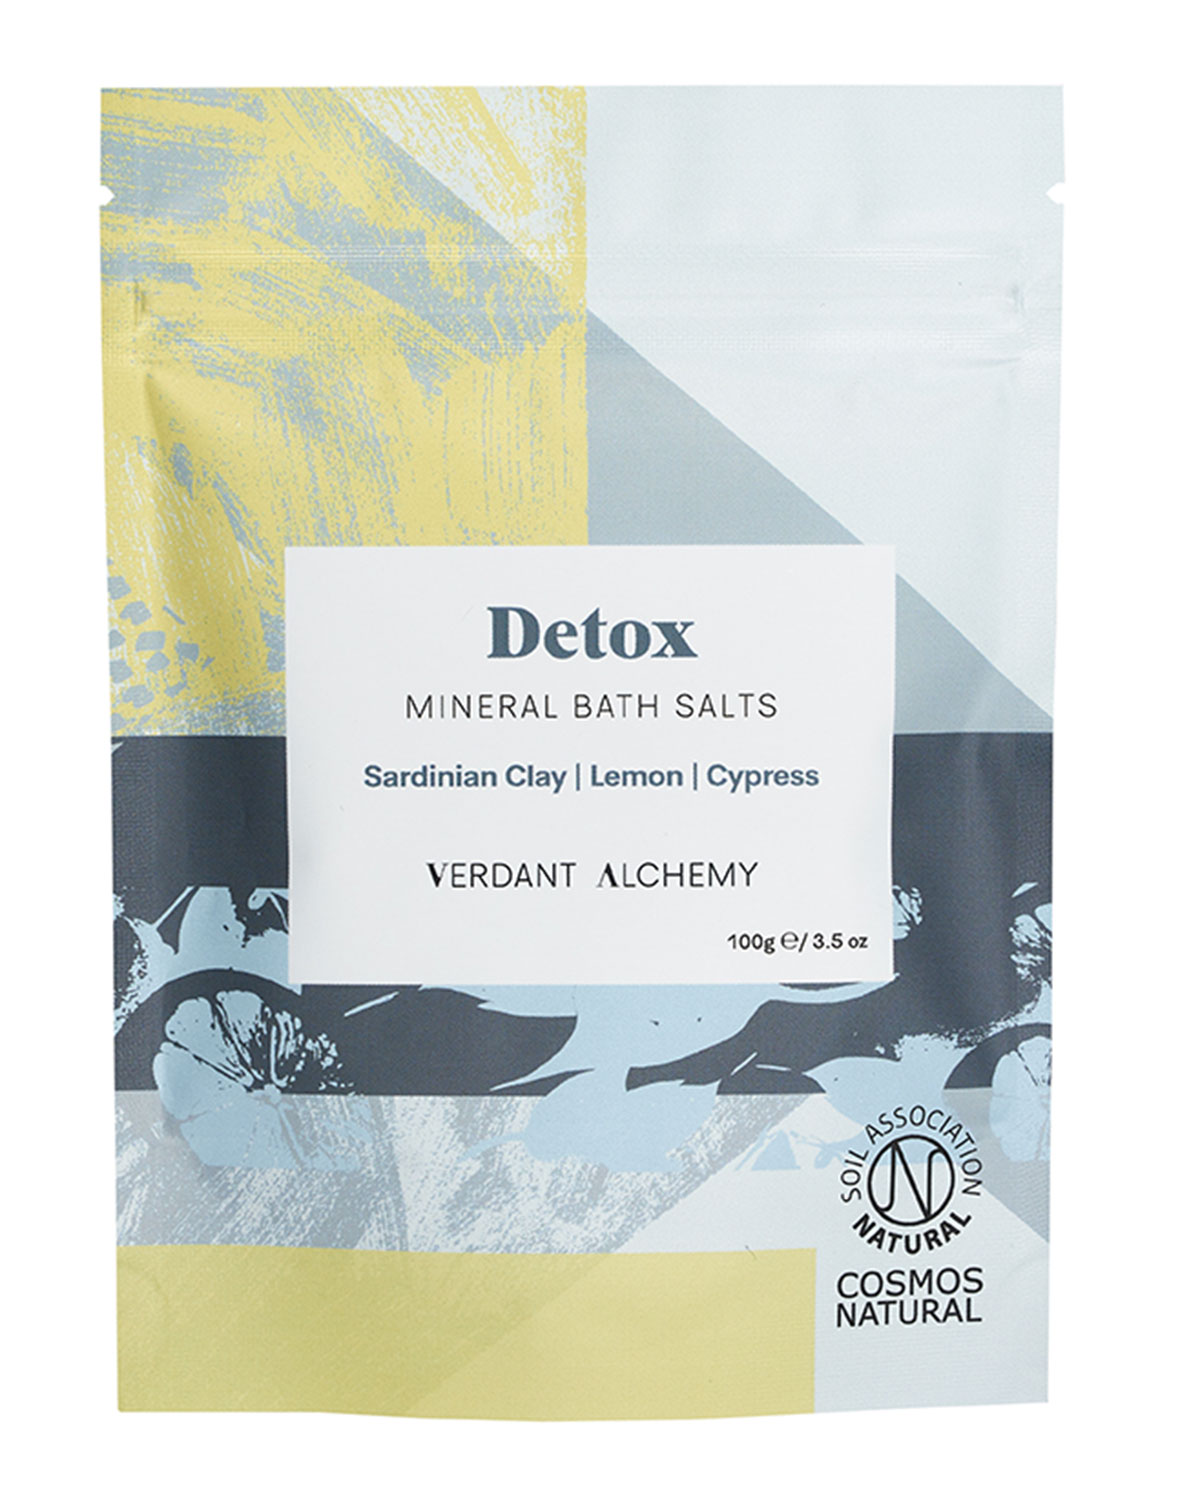 Verdant Alchemy 3.5 oz. Detox Mineral Bath Salts